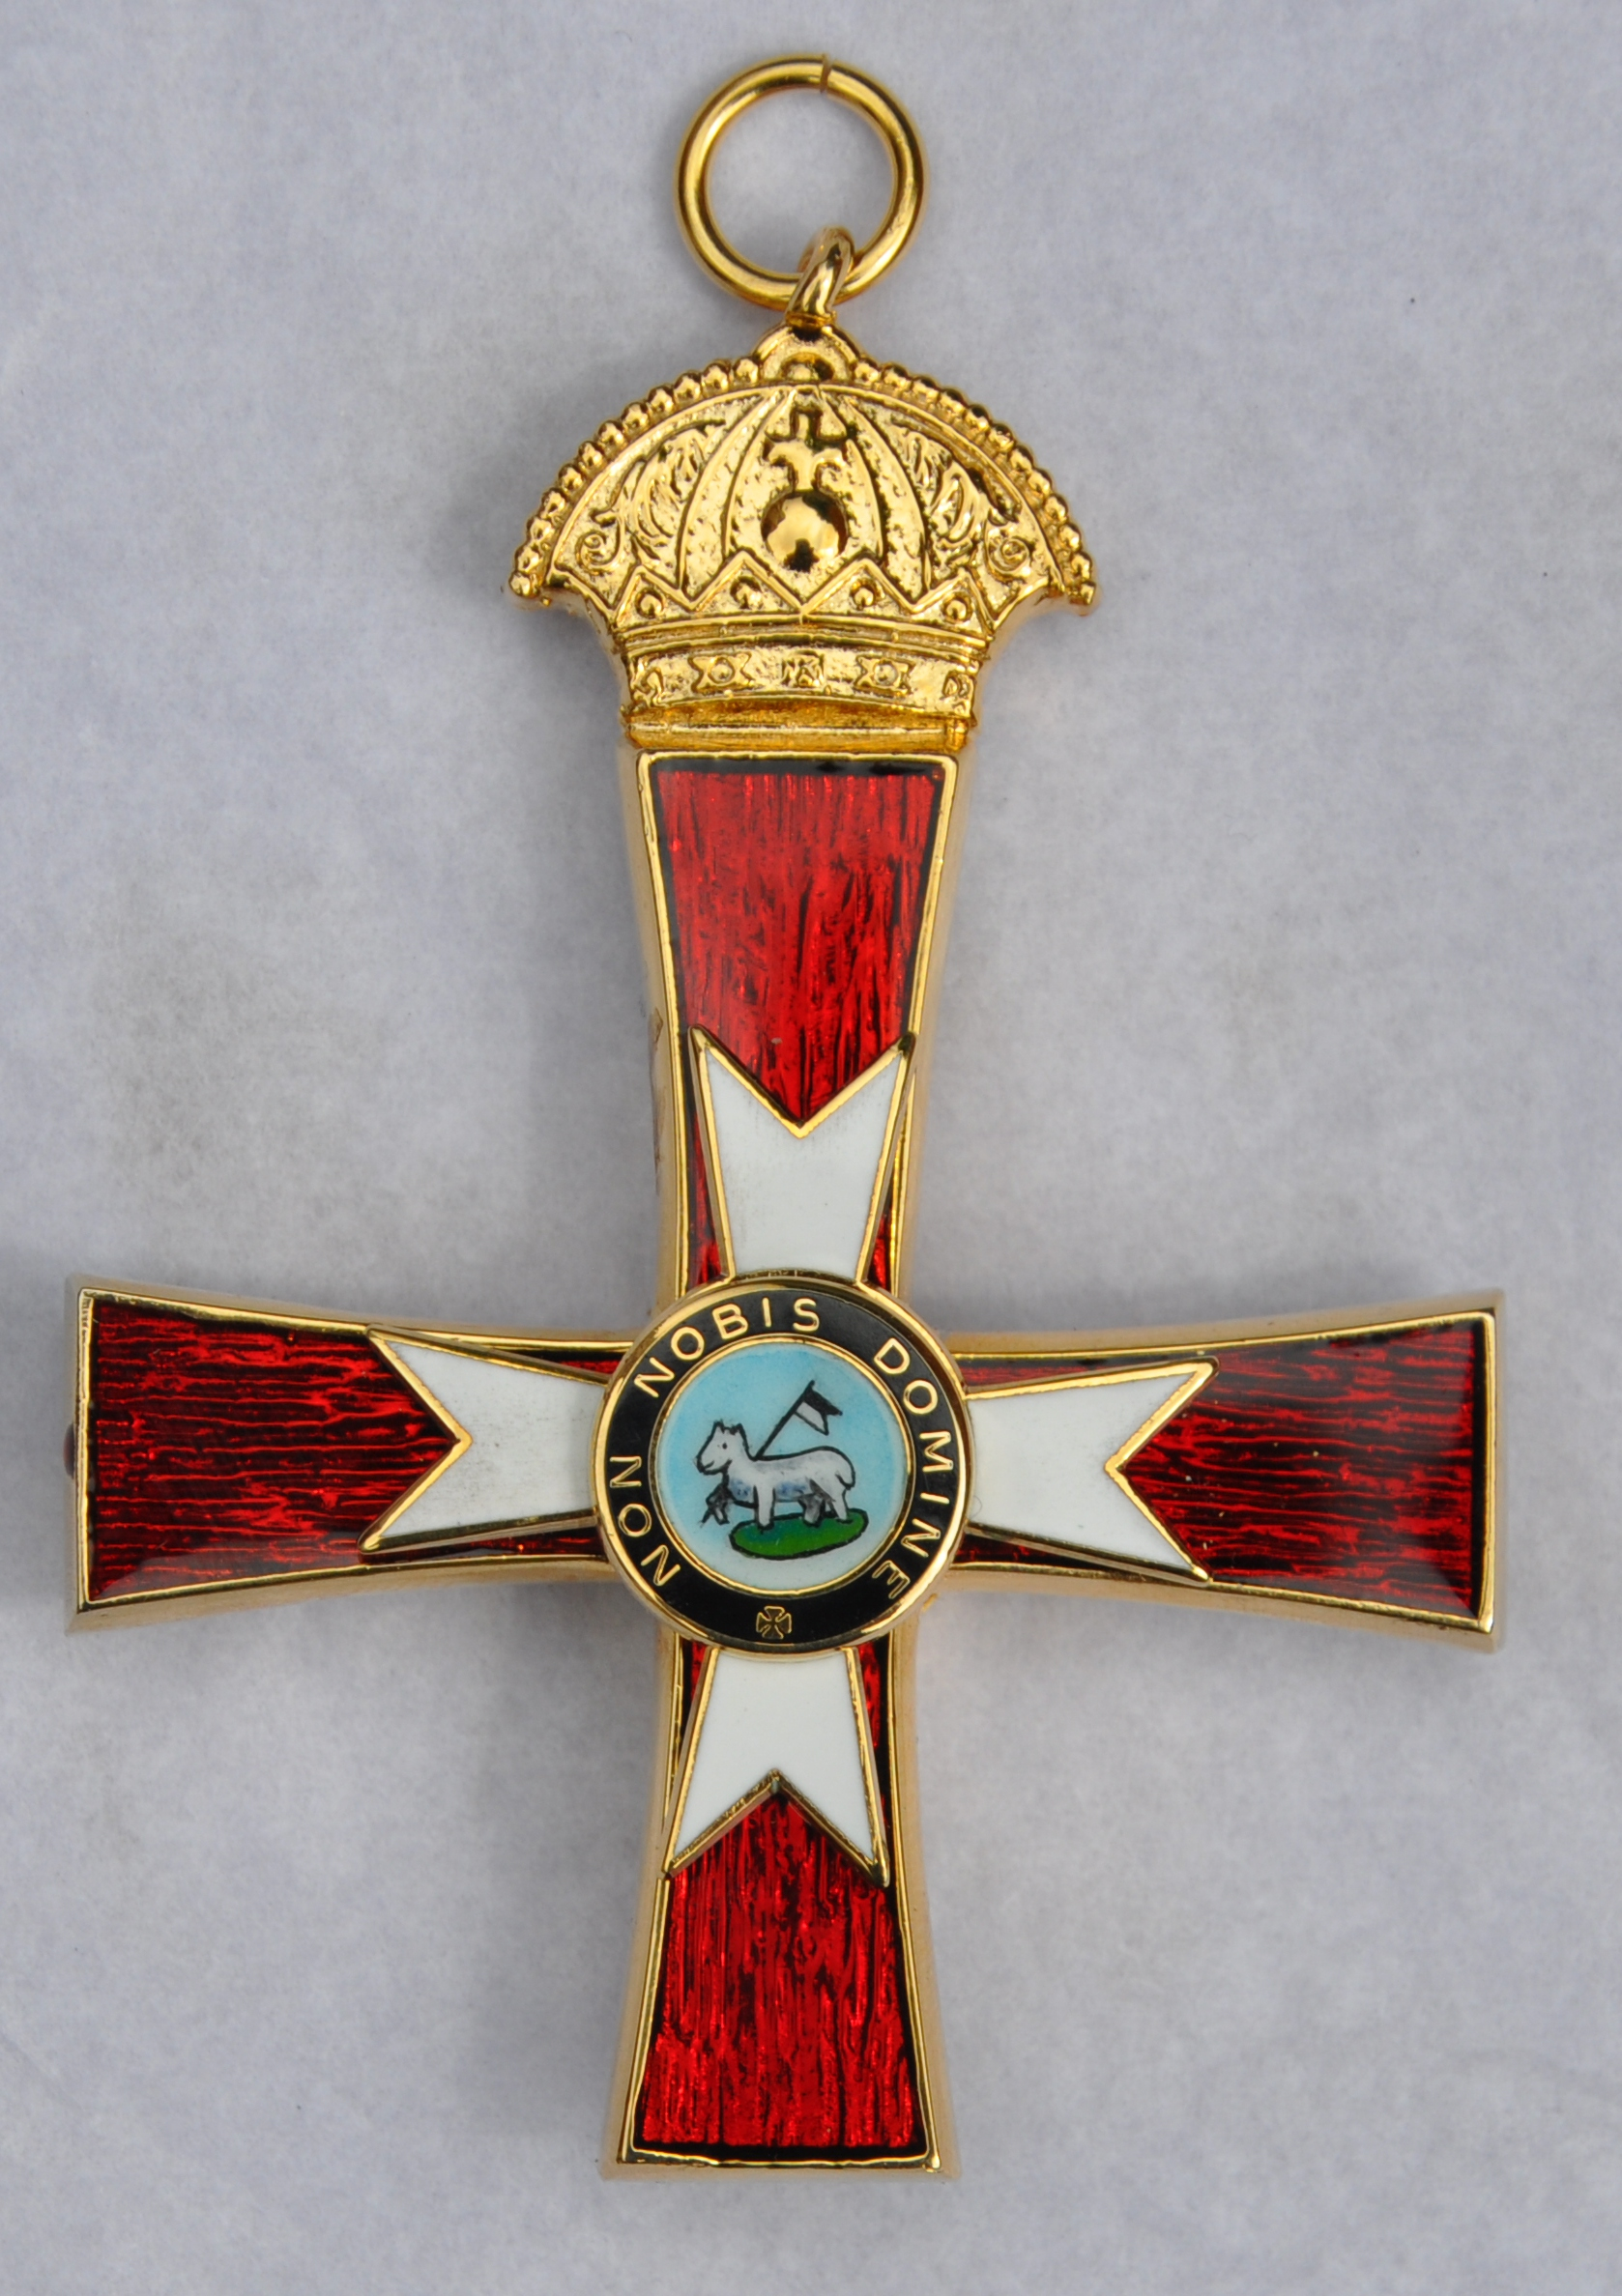 Knights Templar - (GCT / KCT) - Chain Jewel